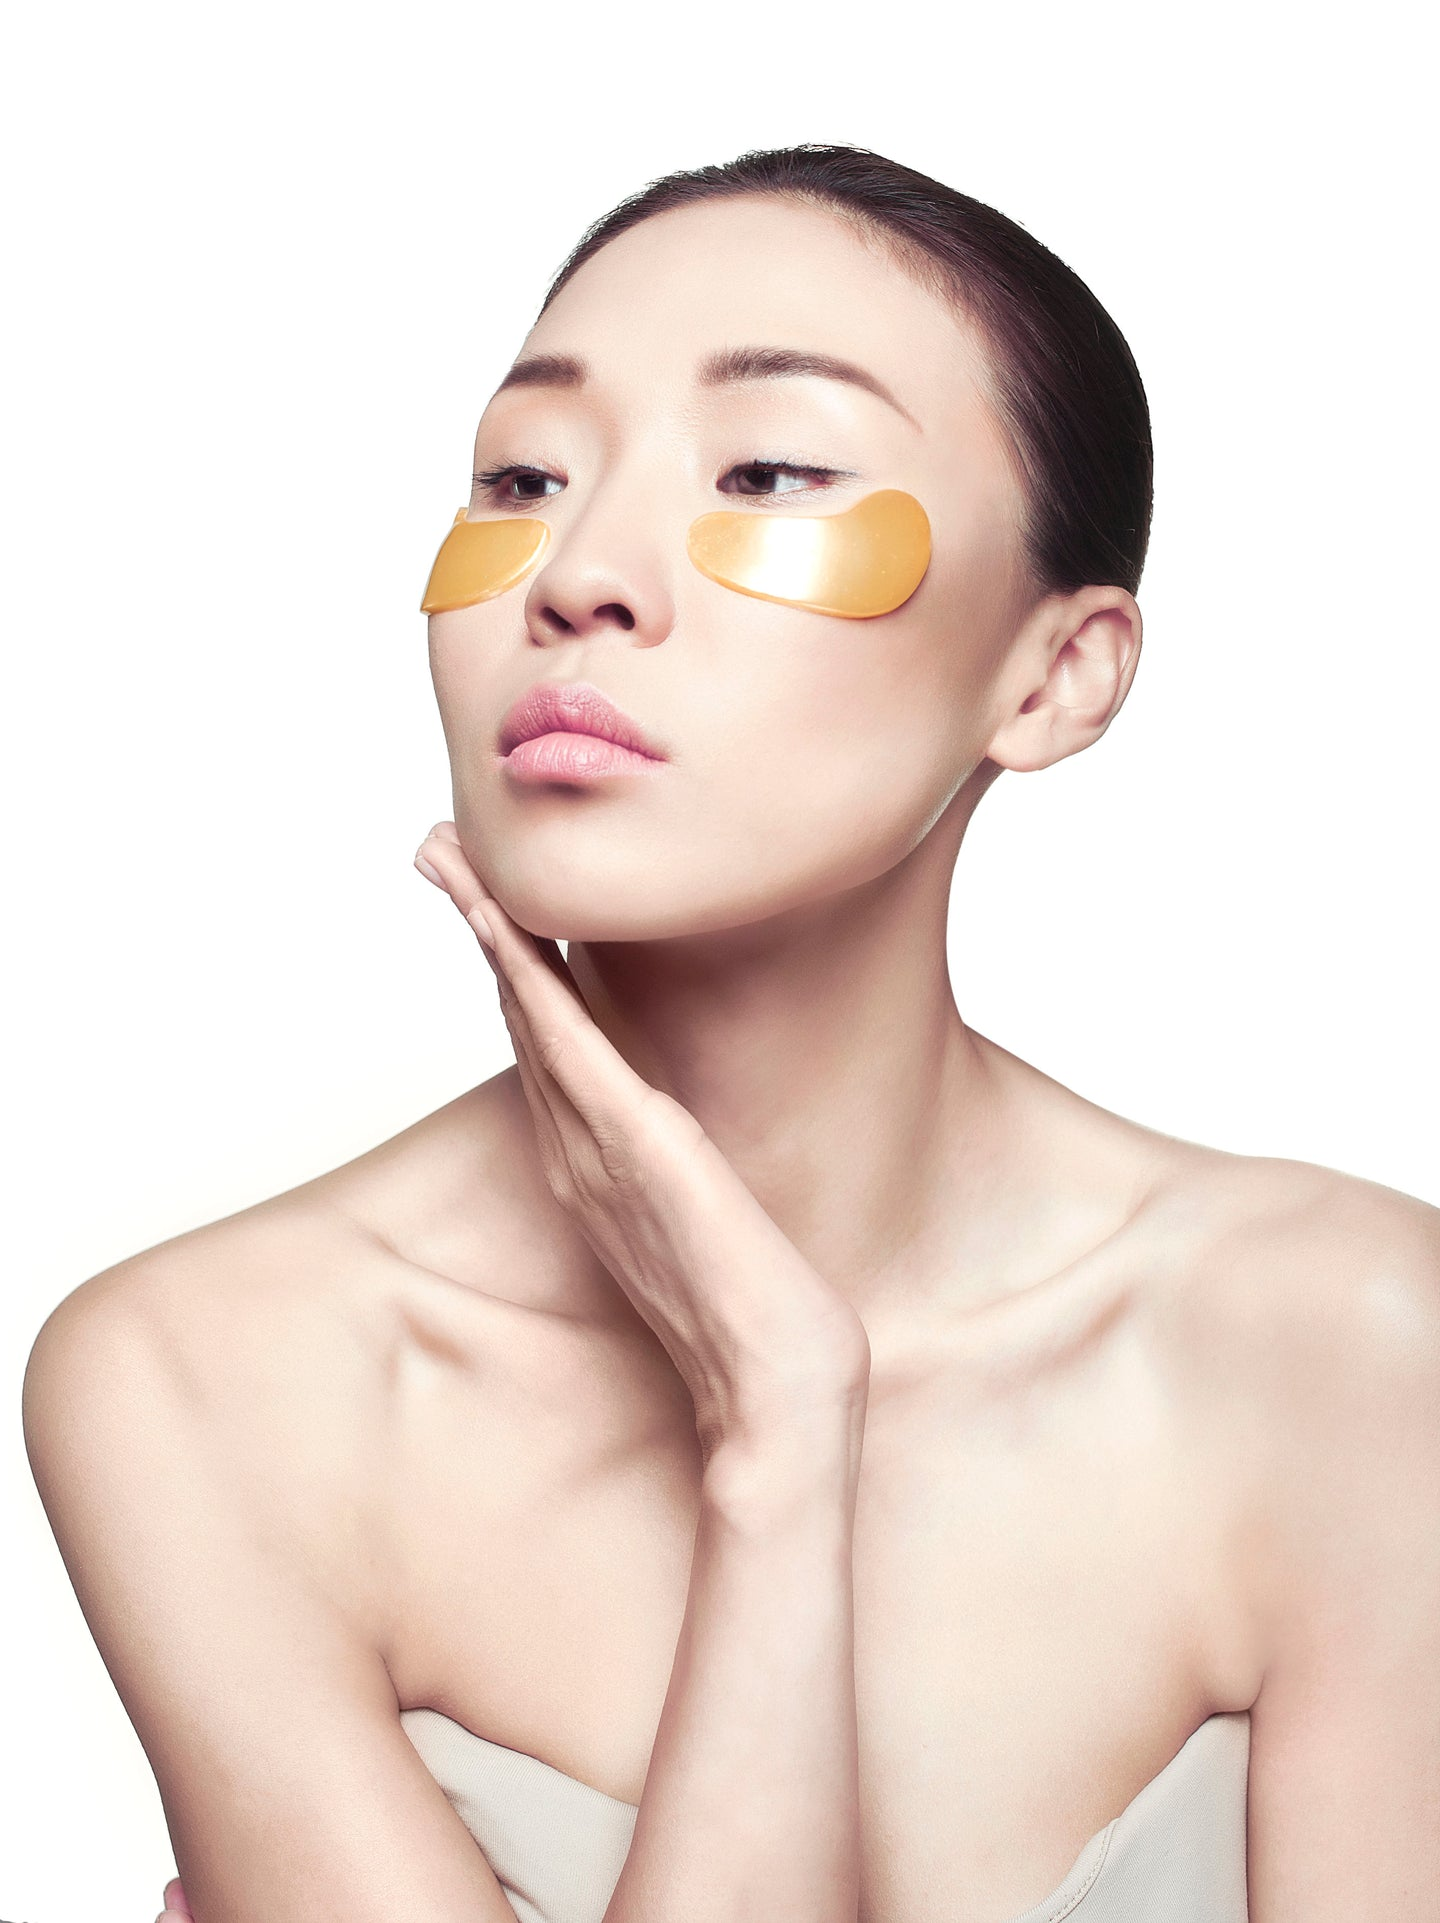 Nanogold Repair Eye Mask - 1 Treatment